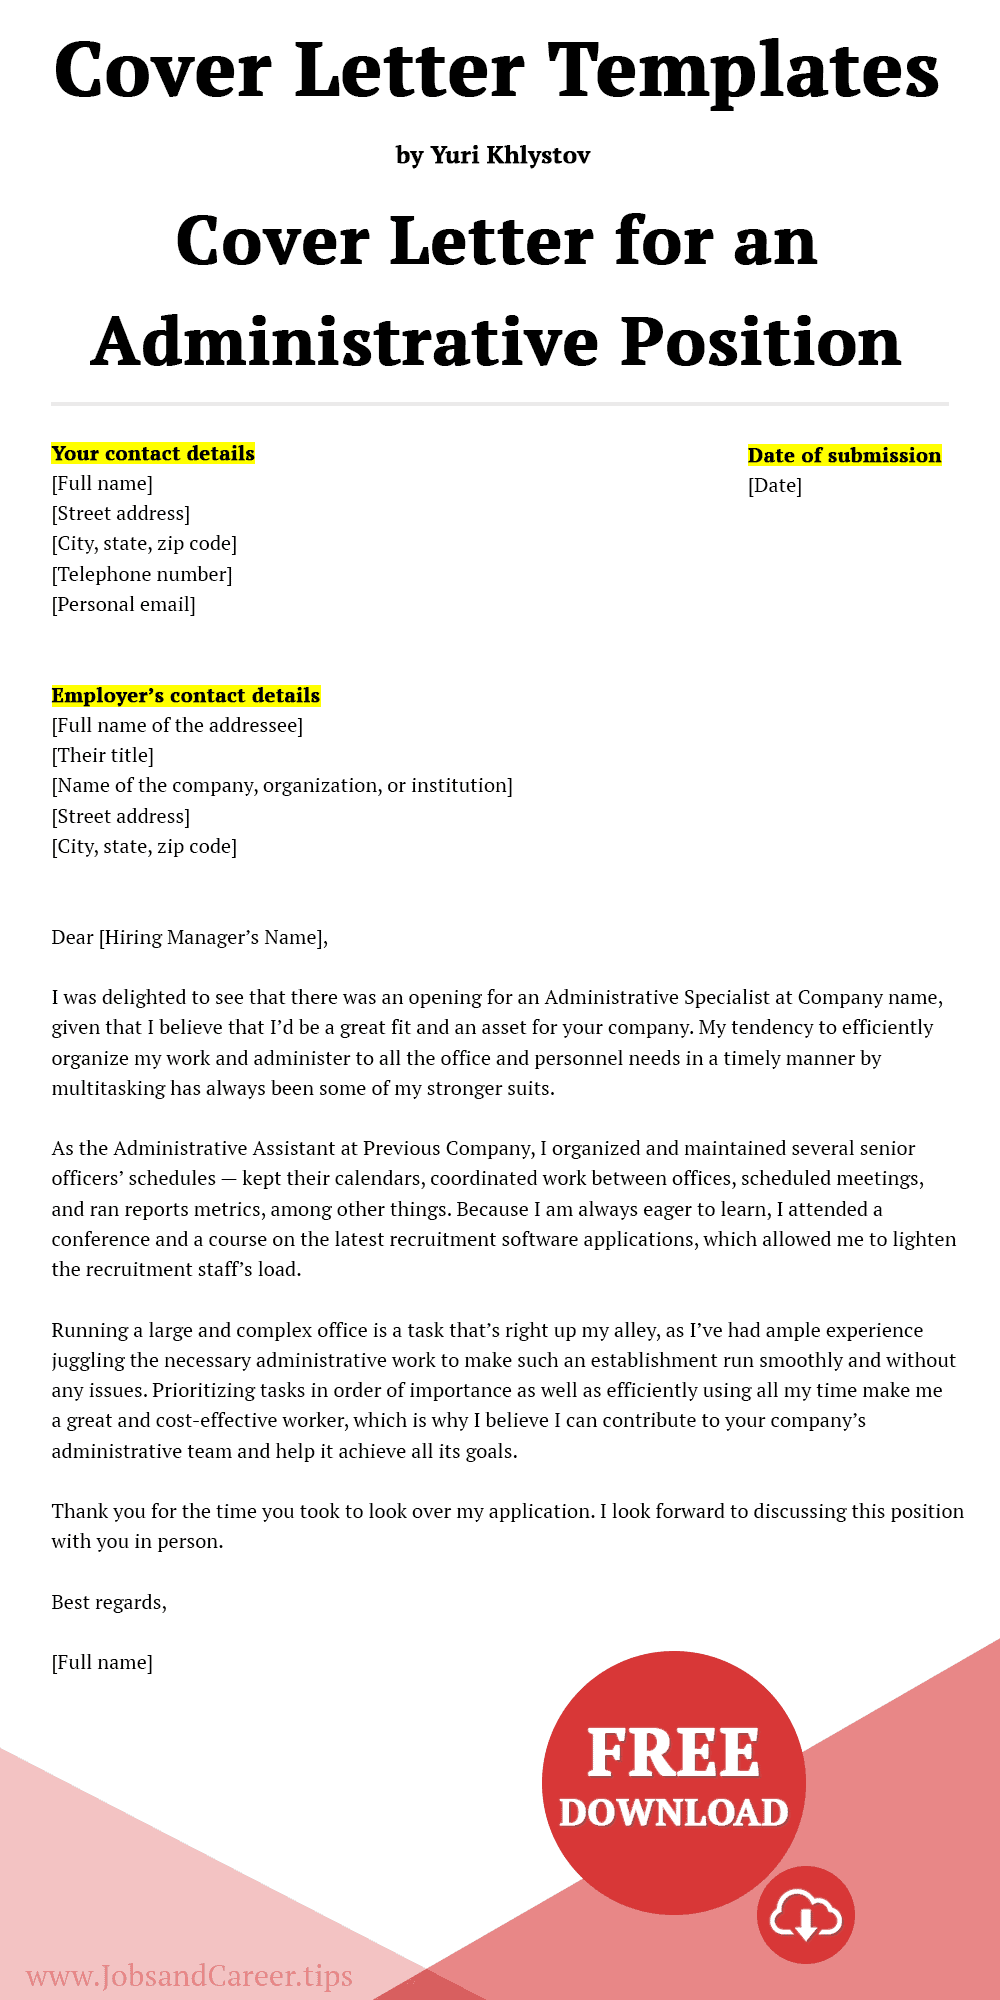 Click to download the cover letter for an administrative position